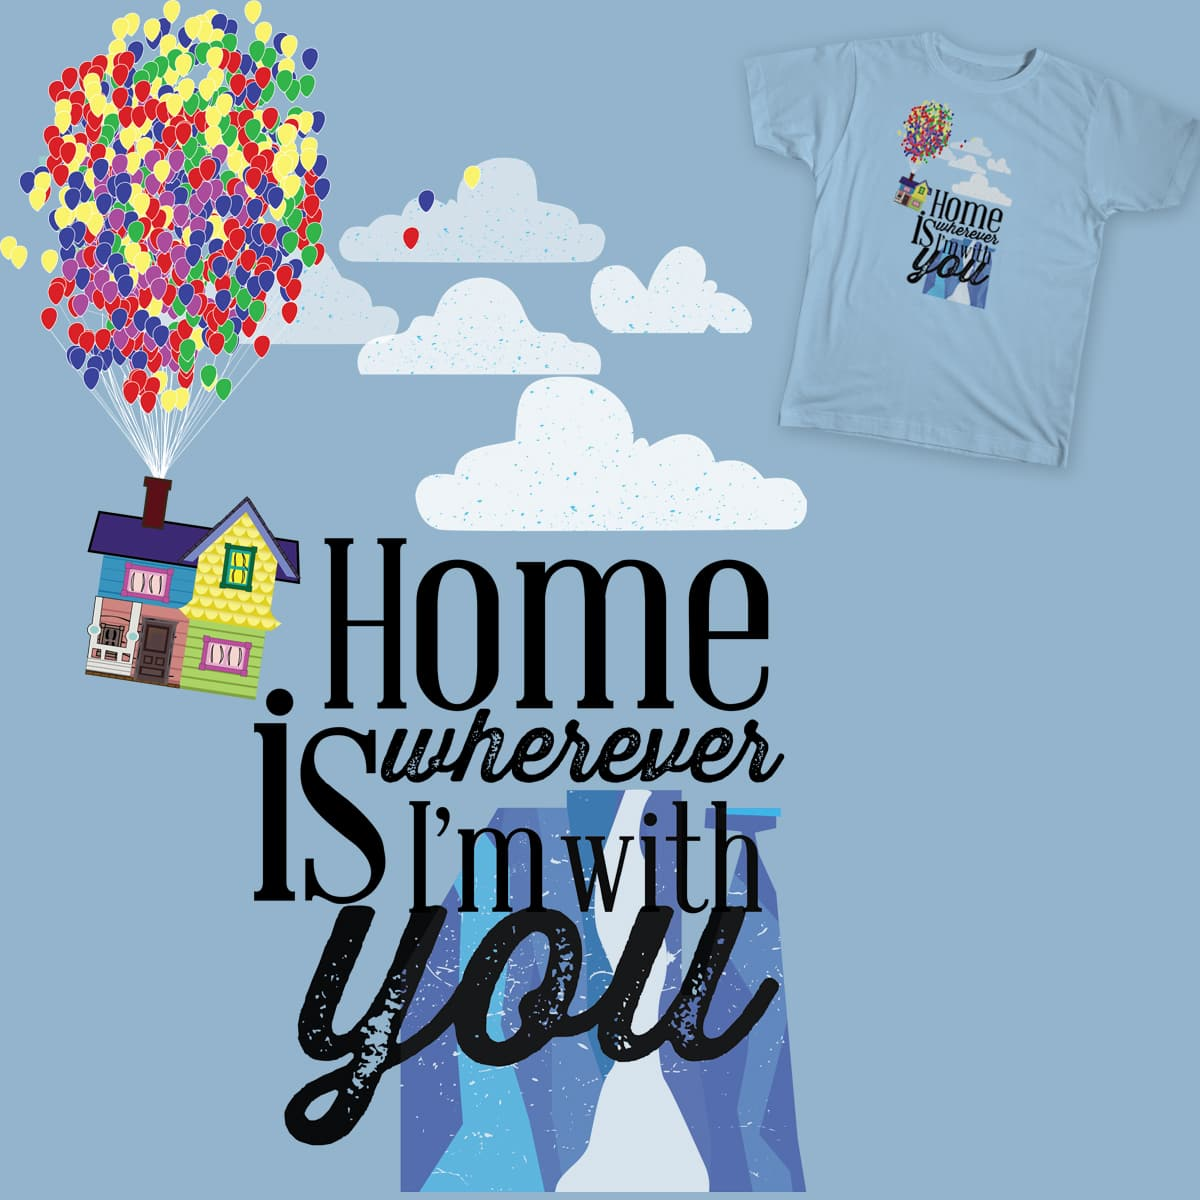 Home Is You by ceddyrichman and katiedidcards on Threadless